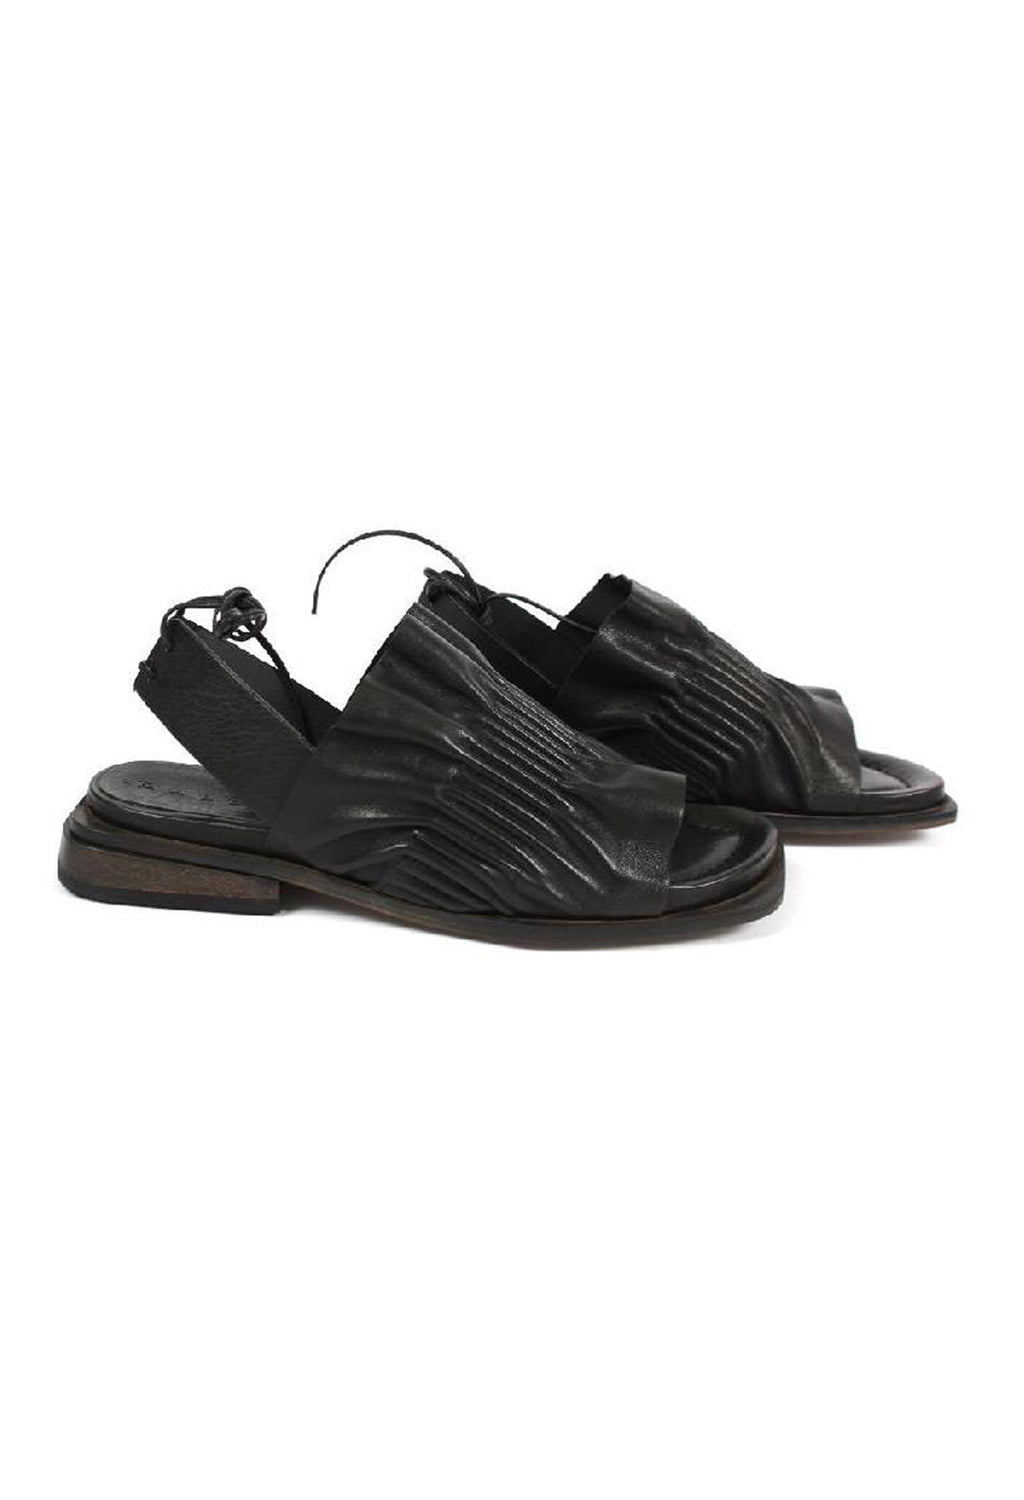 Pleated Tie Back Sandal in Nero